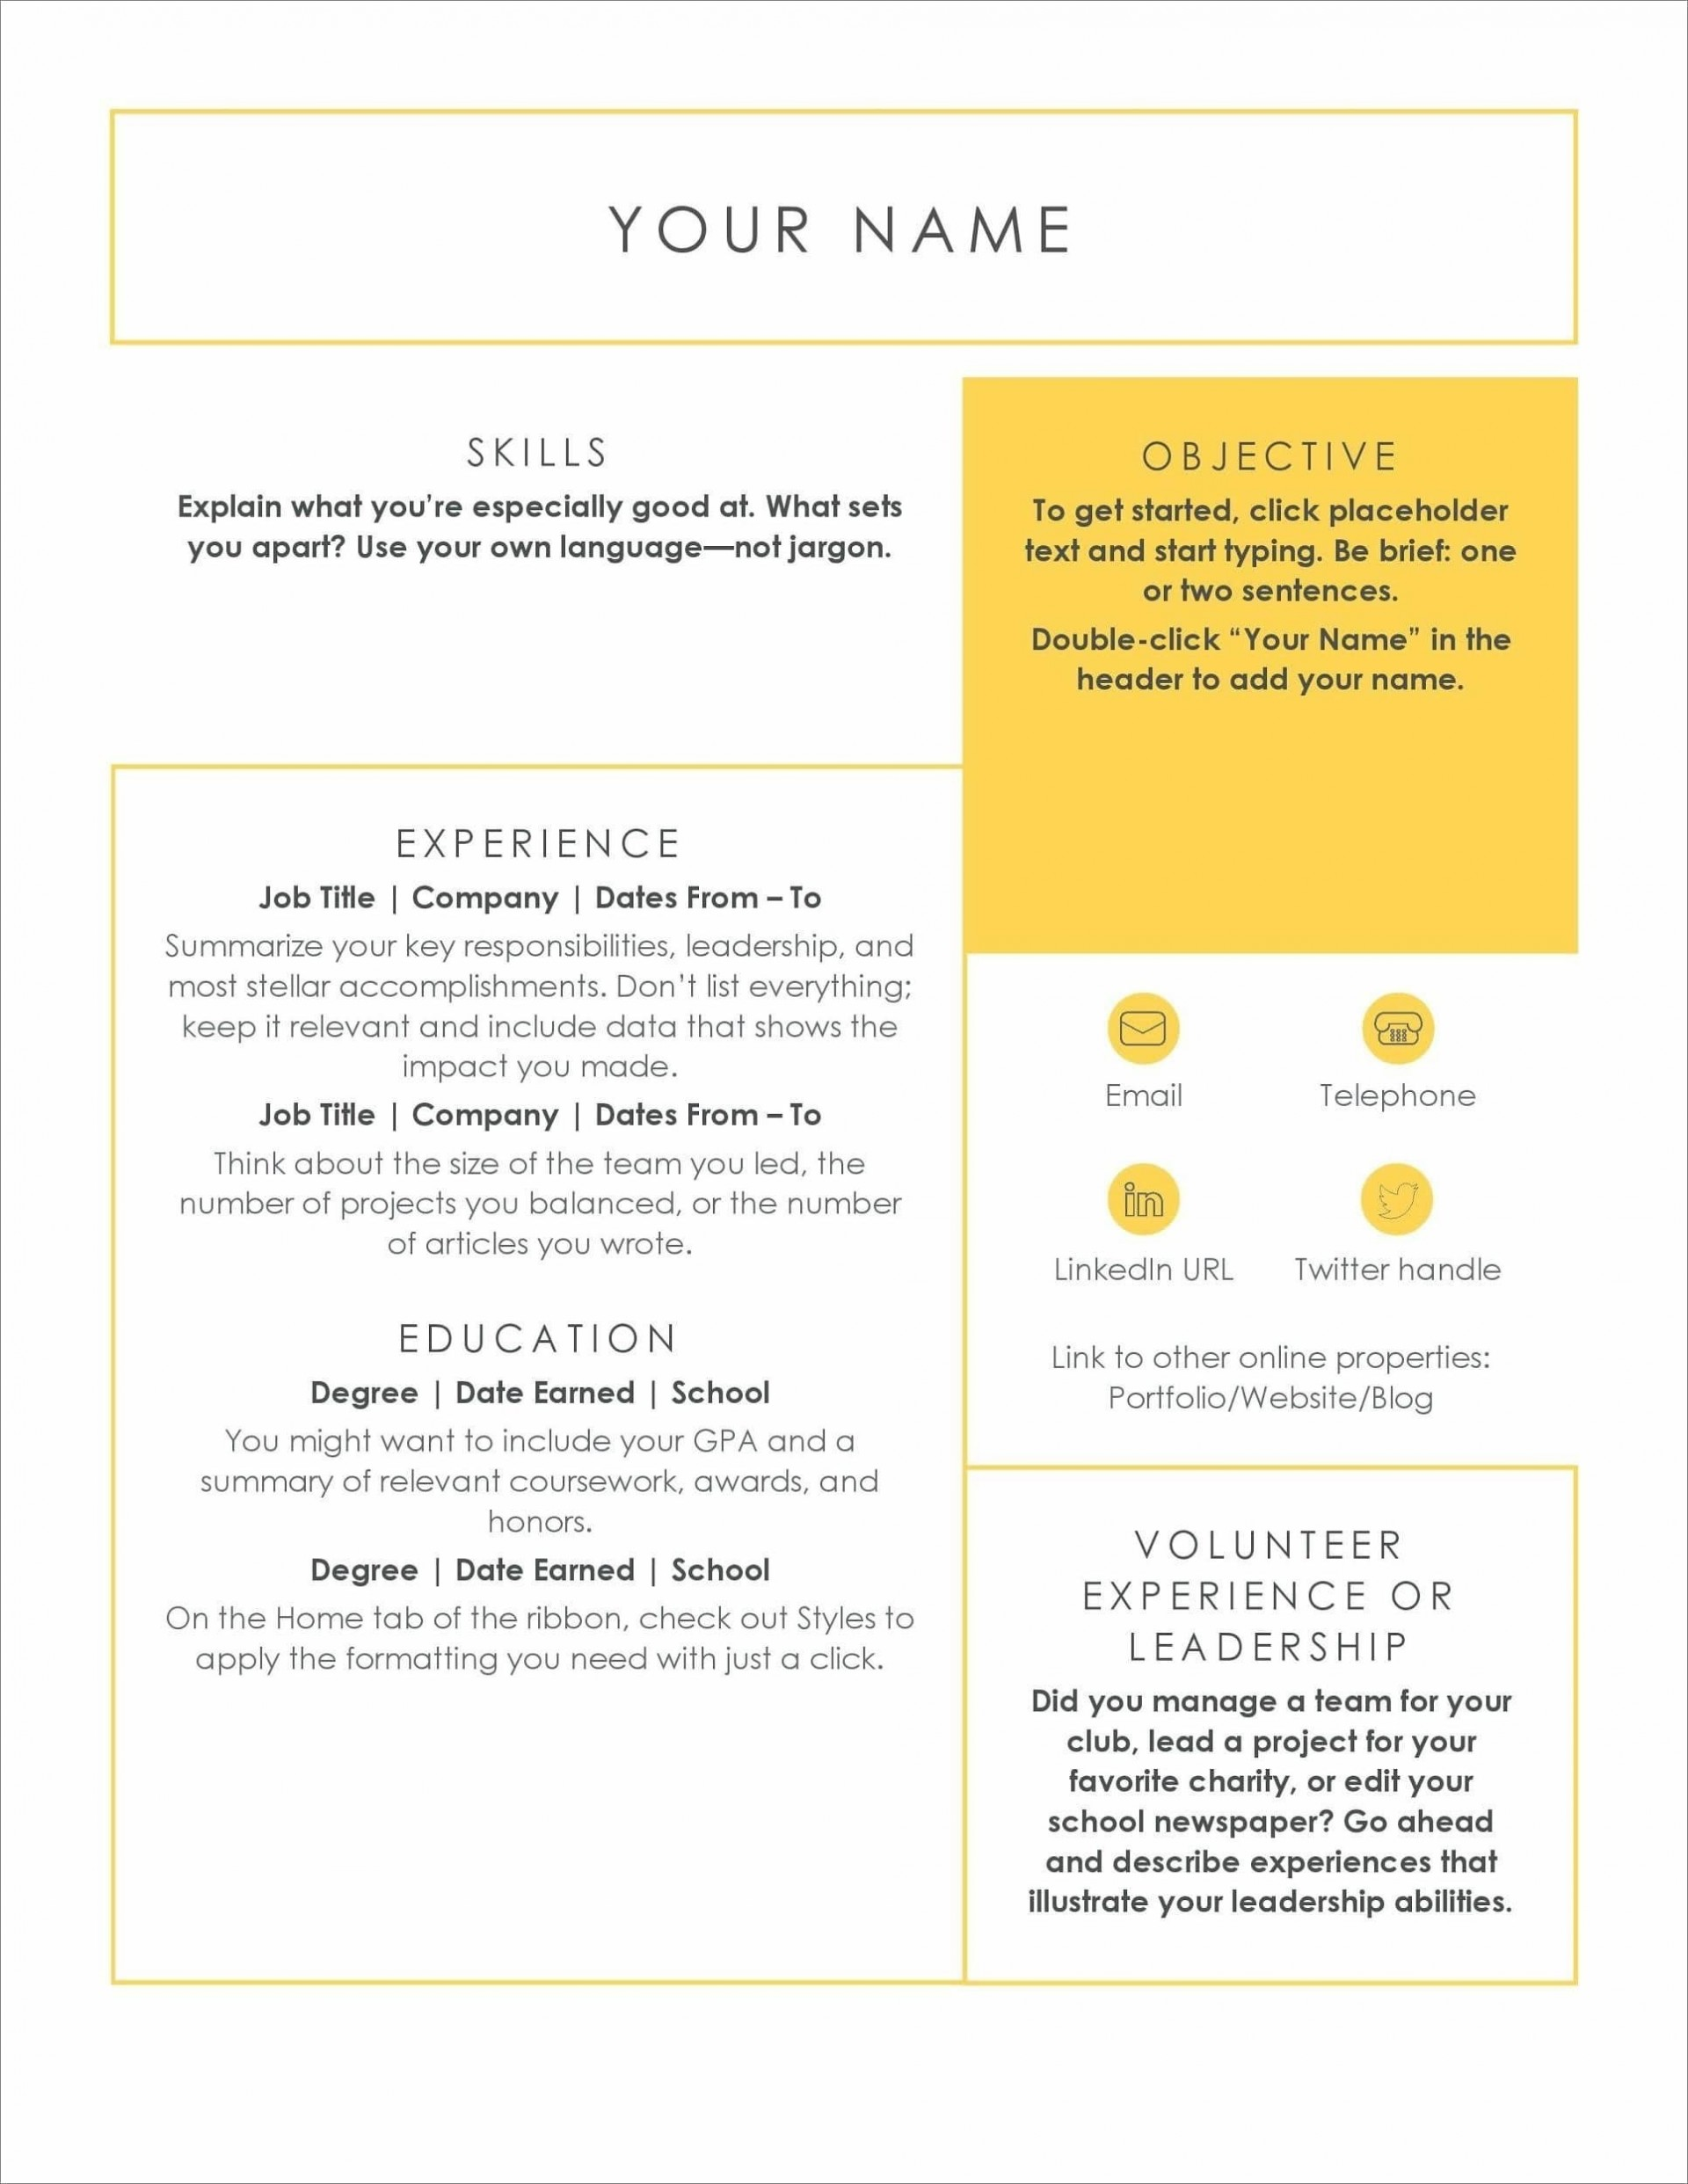 Online Resume Template from www.addictionary.org